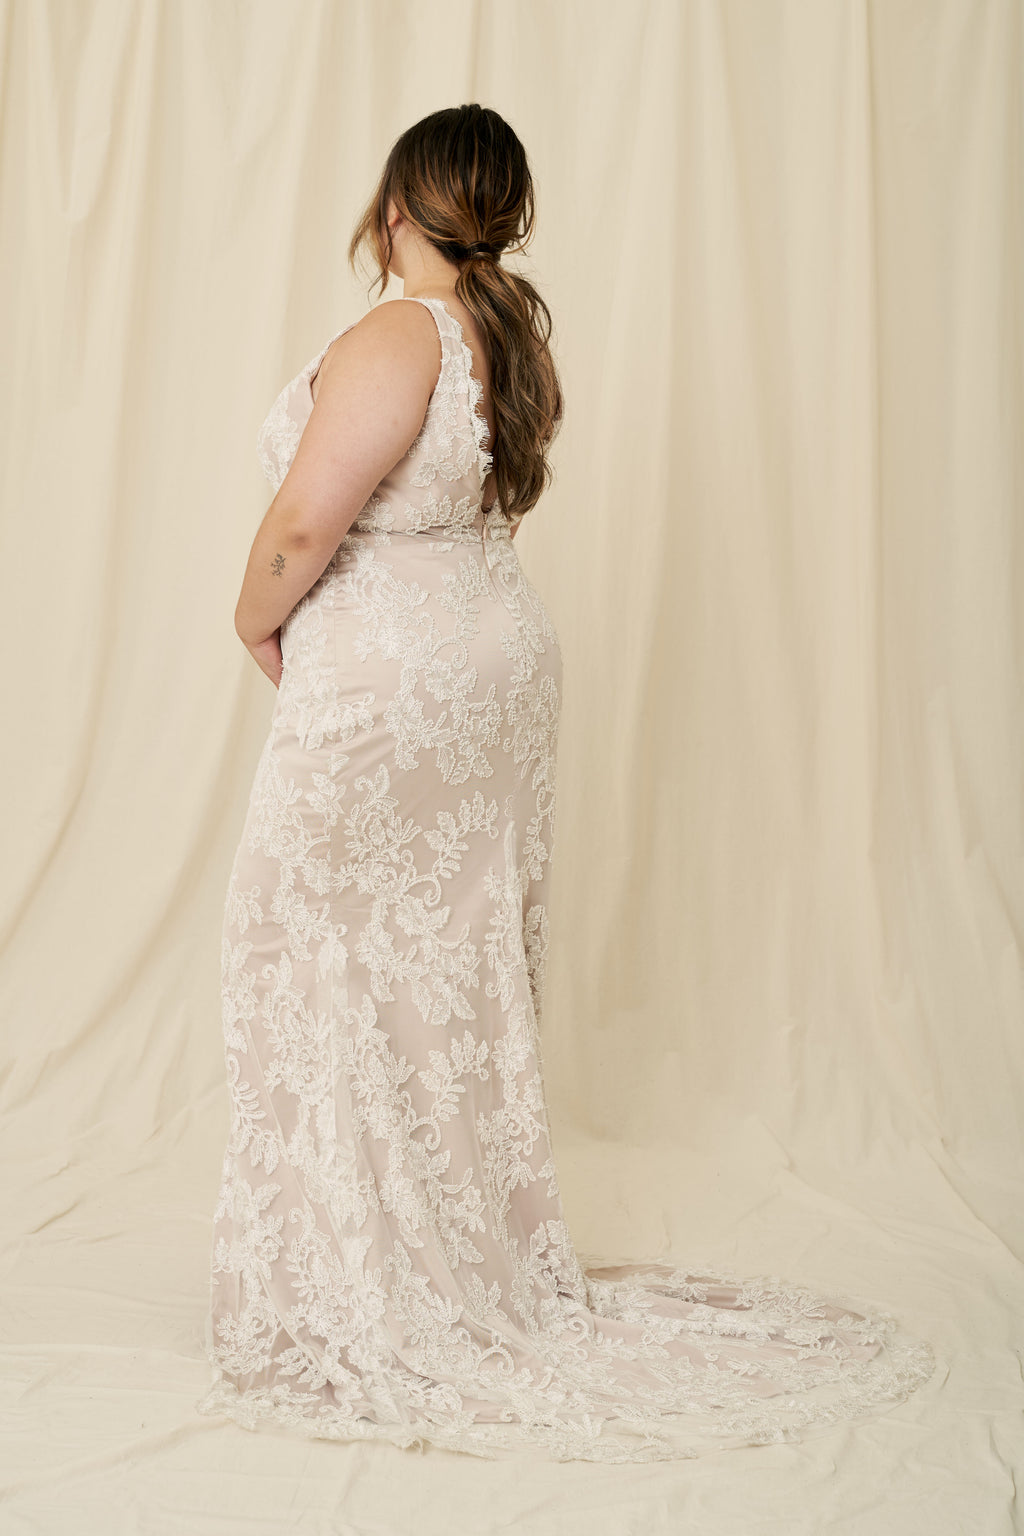 Plus size mermaid wedding dress with nude lining and beaded lace